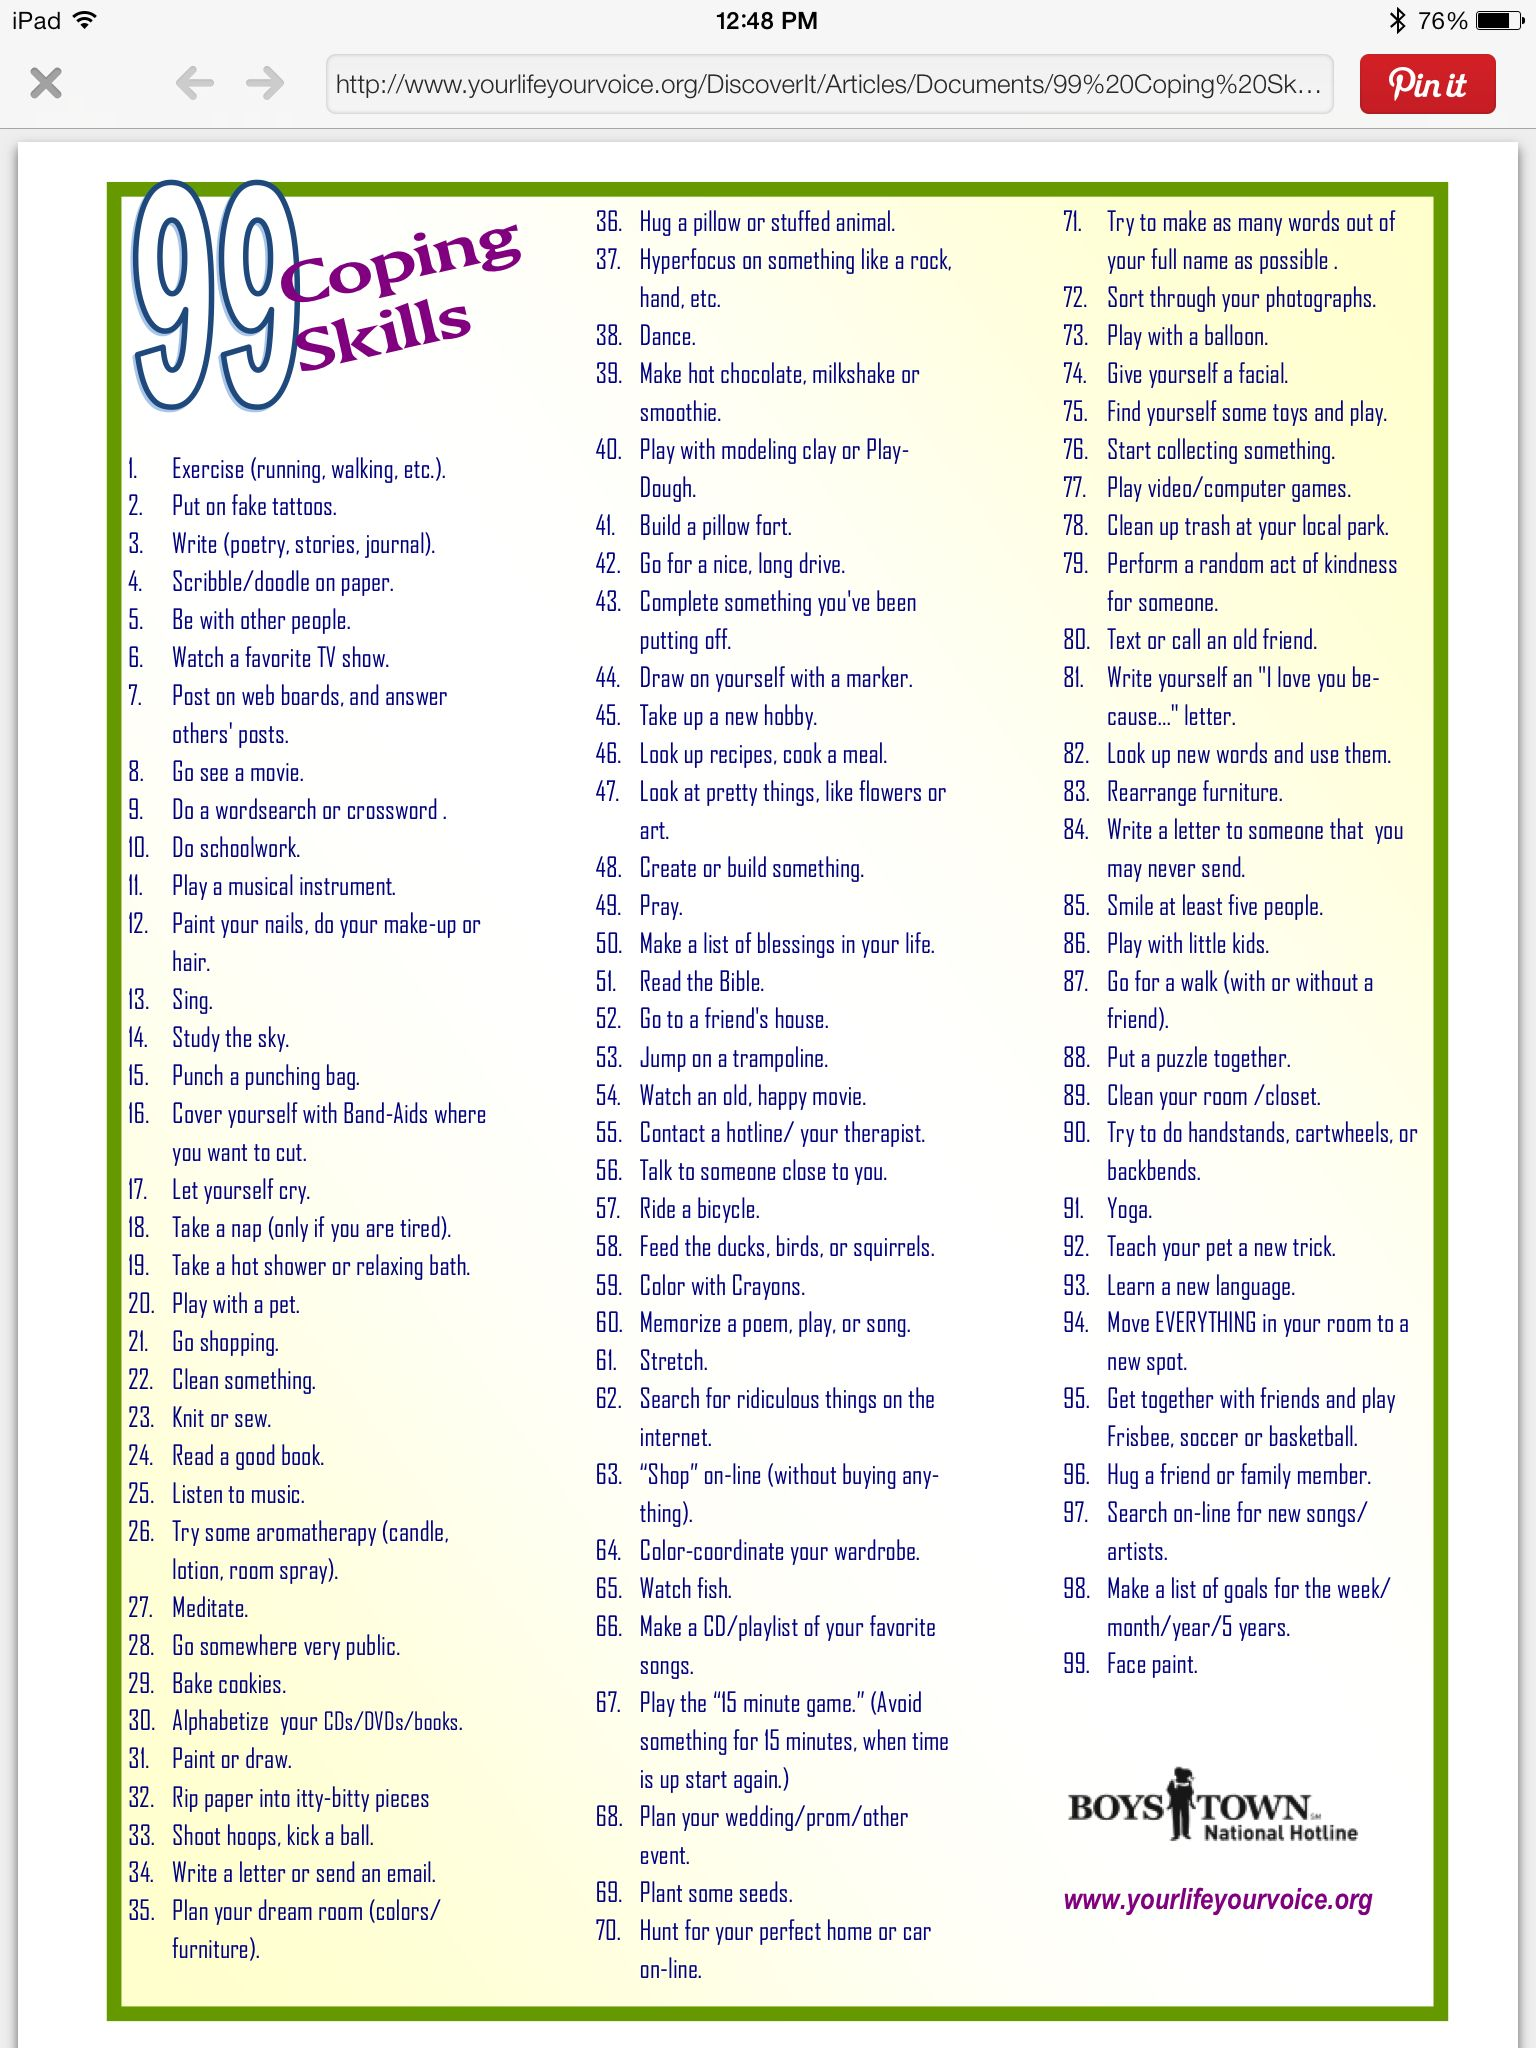 Worksheets Positive Coping Skills Worksheets boys town list of 99 distractions ways to cope with stress stress